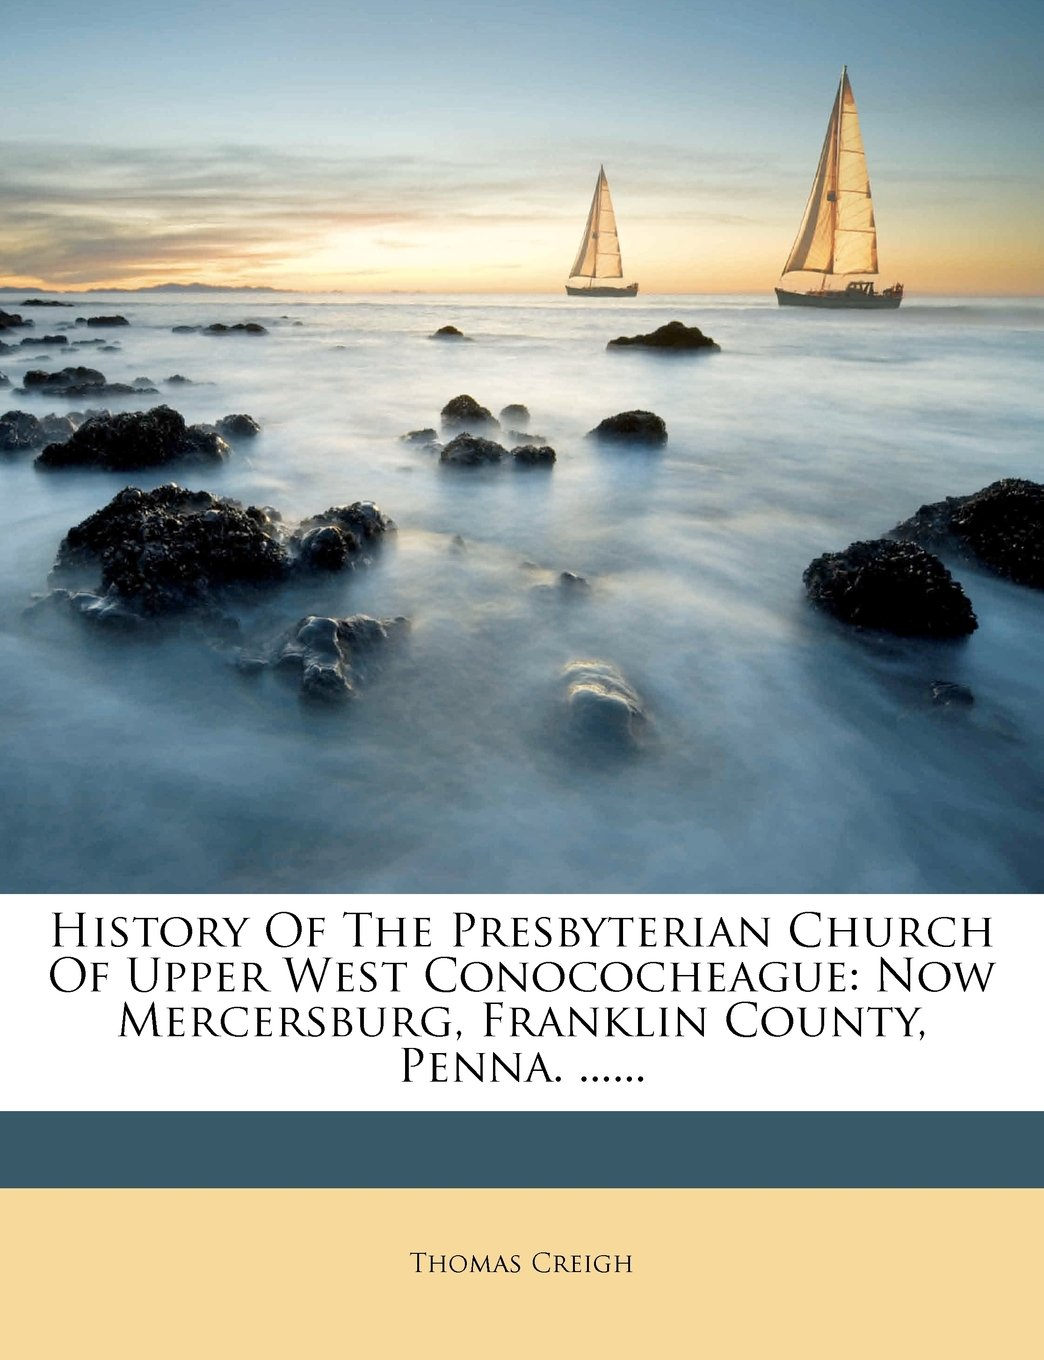 History Of The Presbyterian Church Of Upper West Conococheague: Now Mercersburg, Franklin County, Penna. ...... pdf